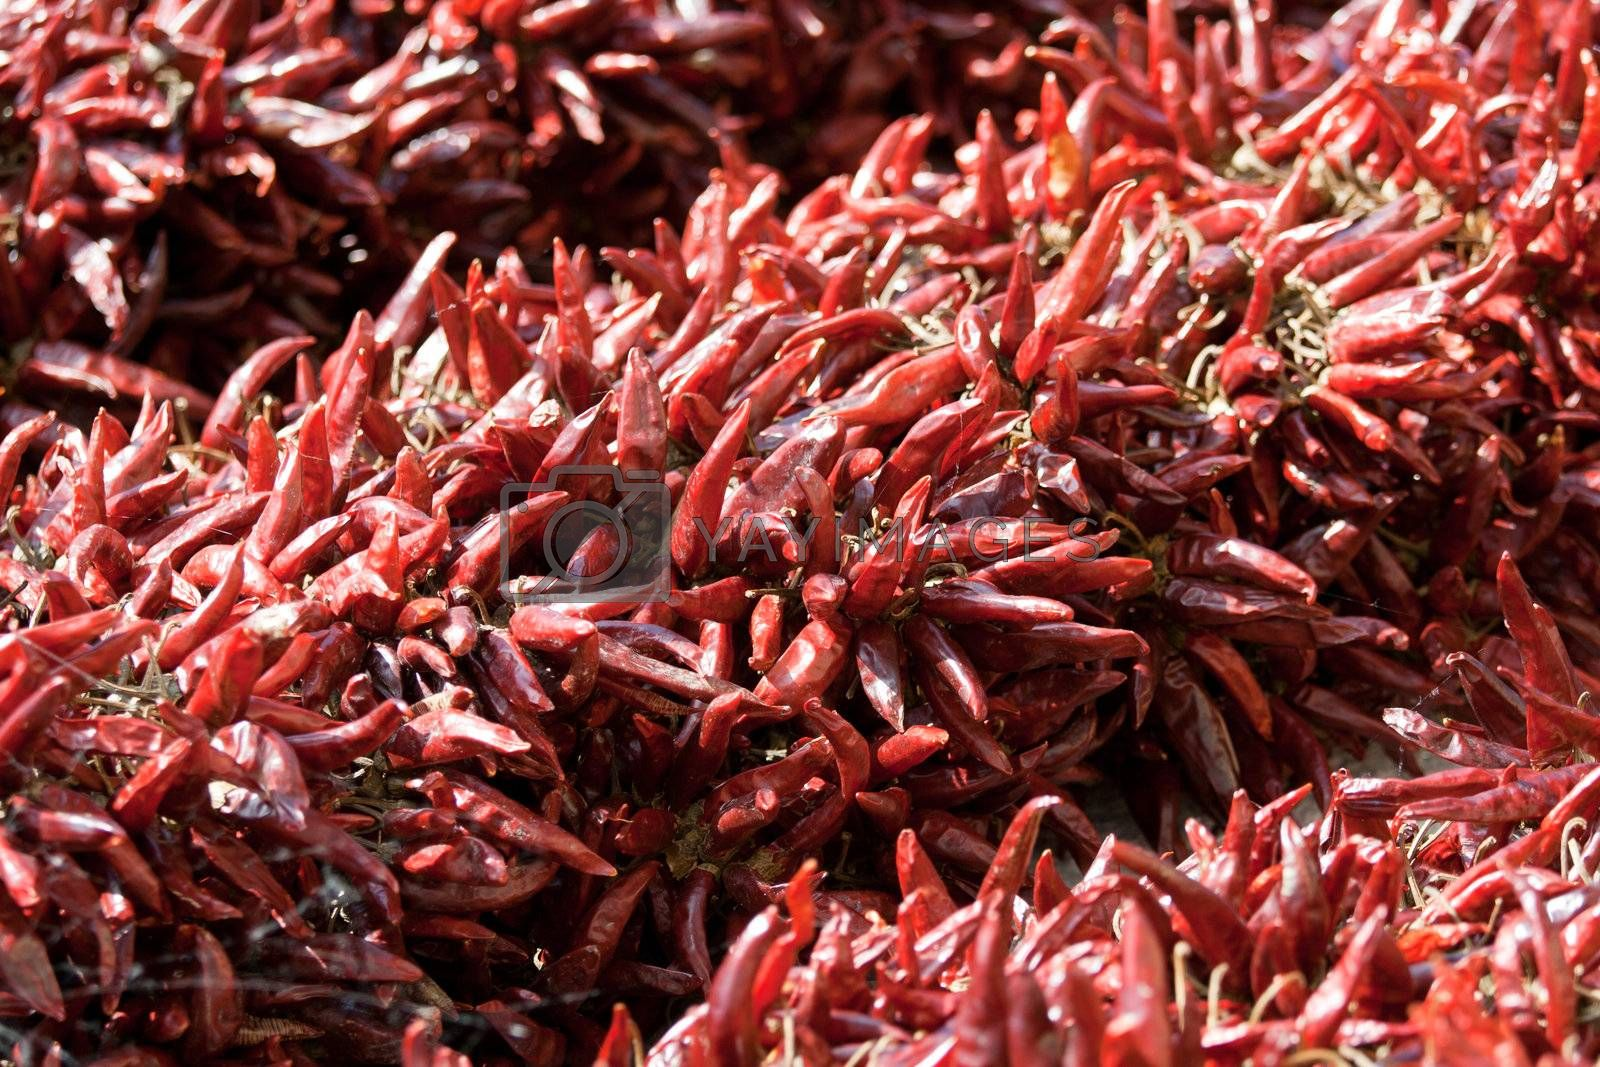 Bundles of dried red hot chili pepper on market